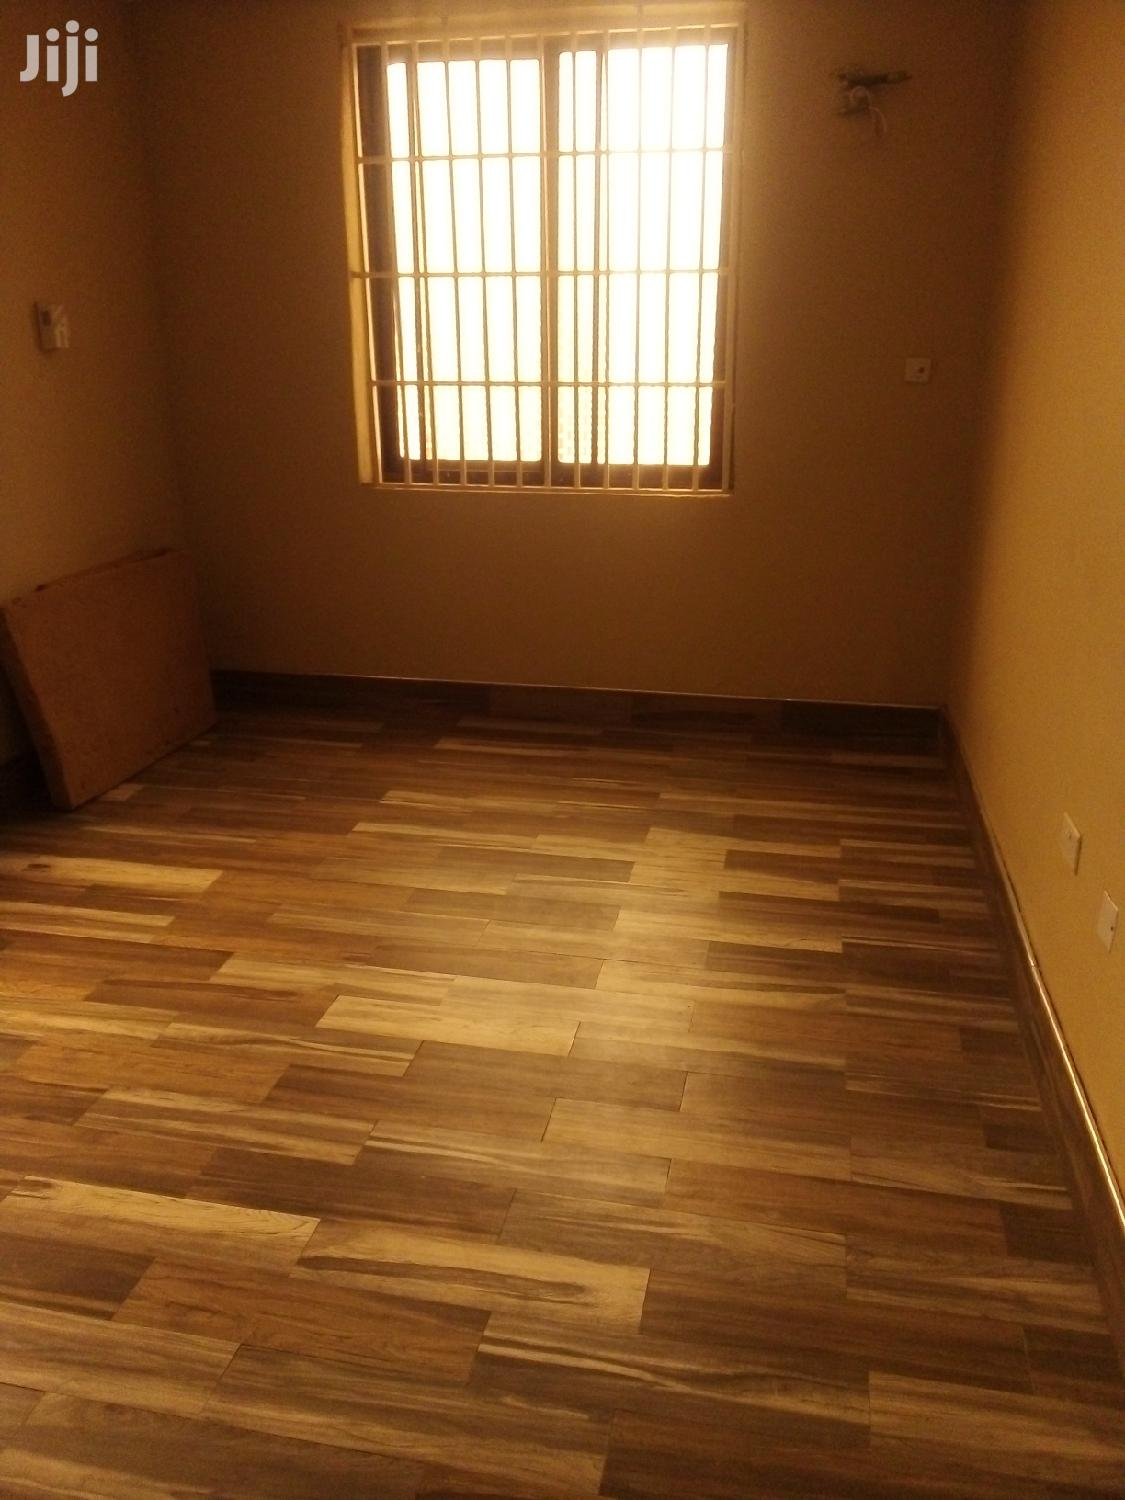 Estate Agent In Tema   Houses & Apartments For Rent for sale in Tema Metropolitan, Greater Accra, Ghana